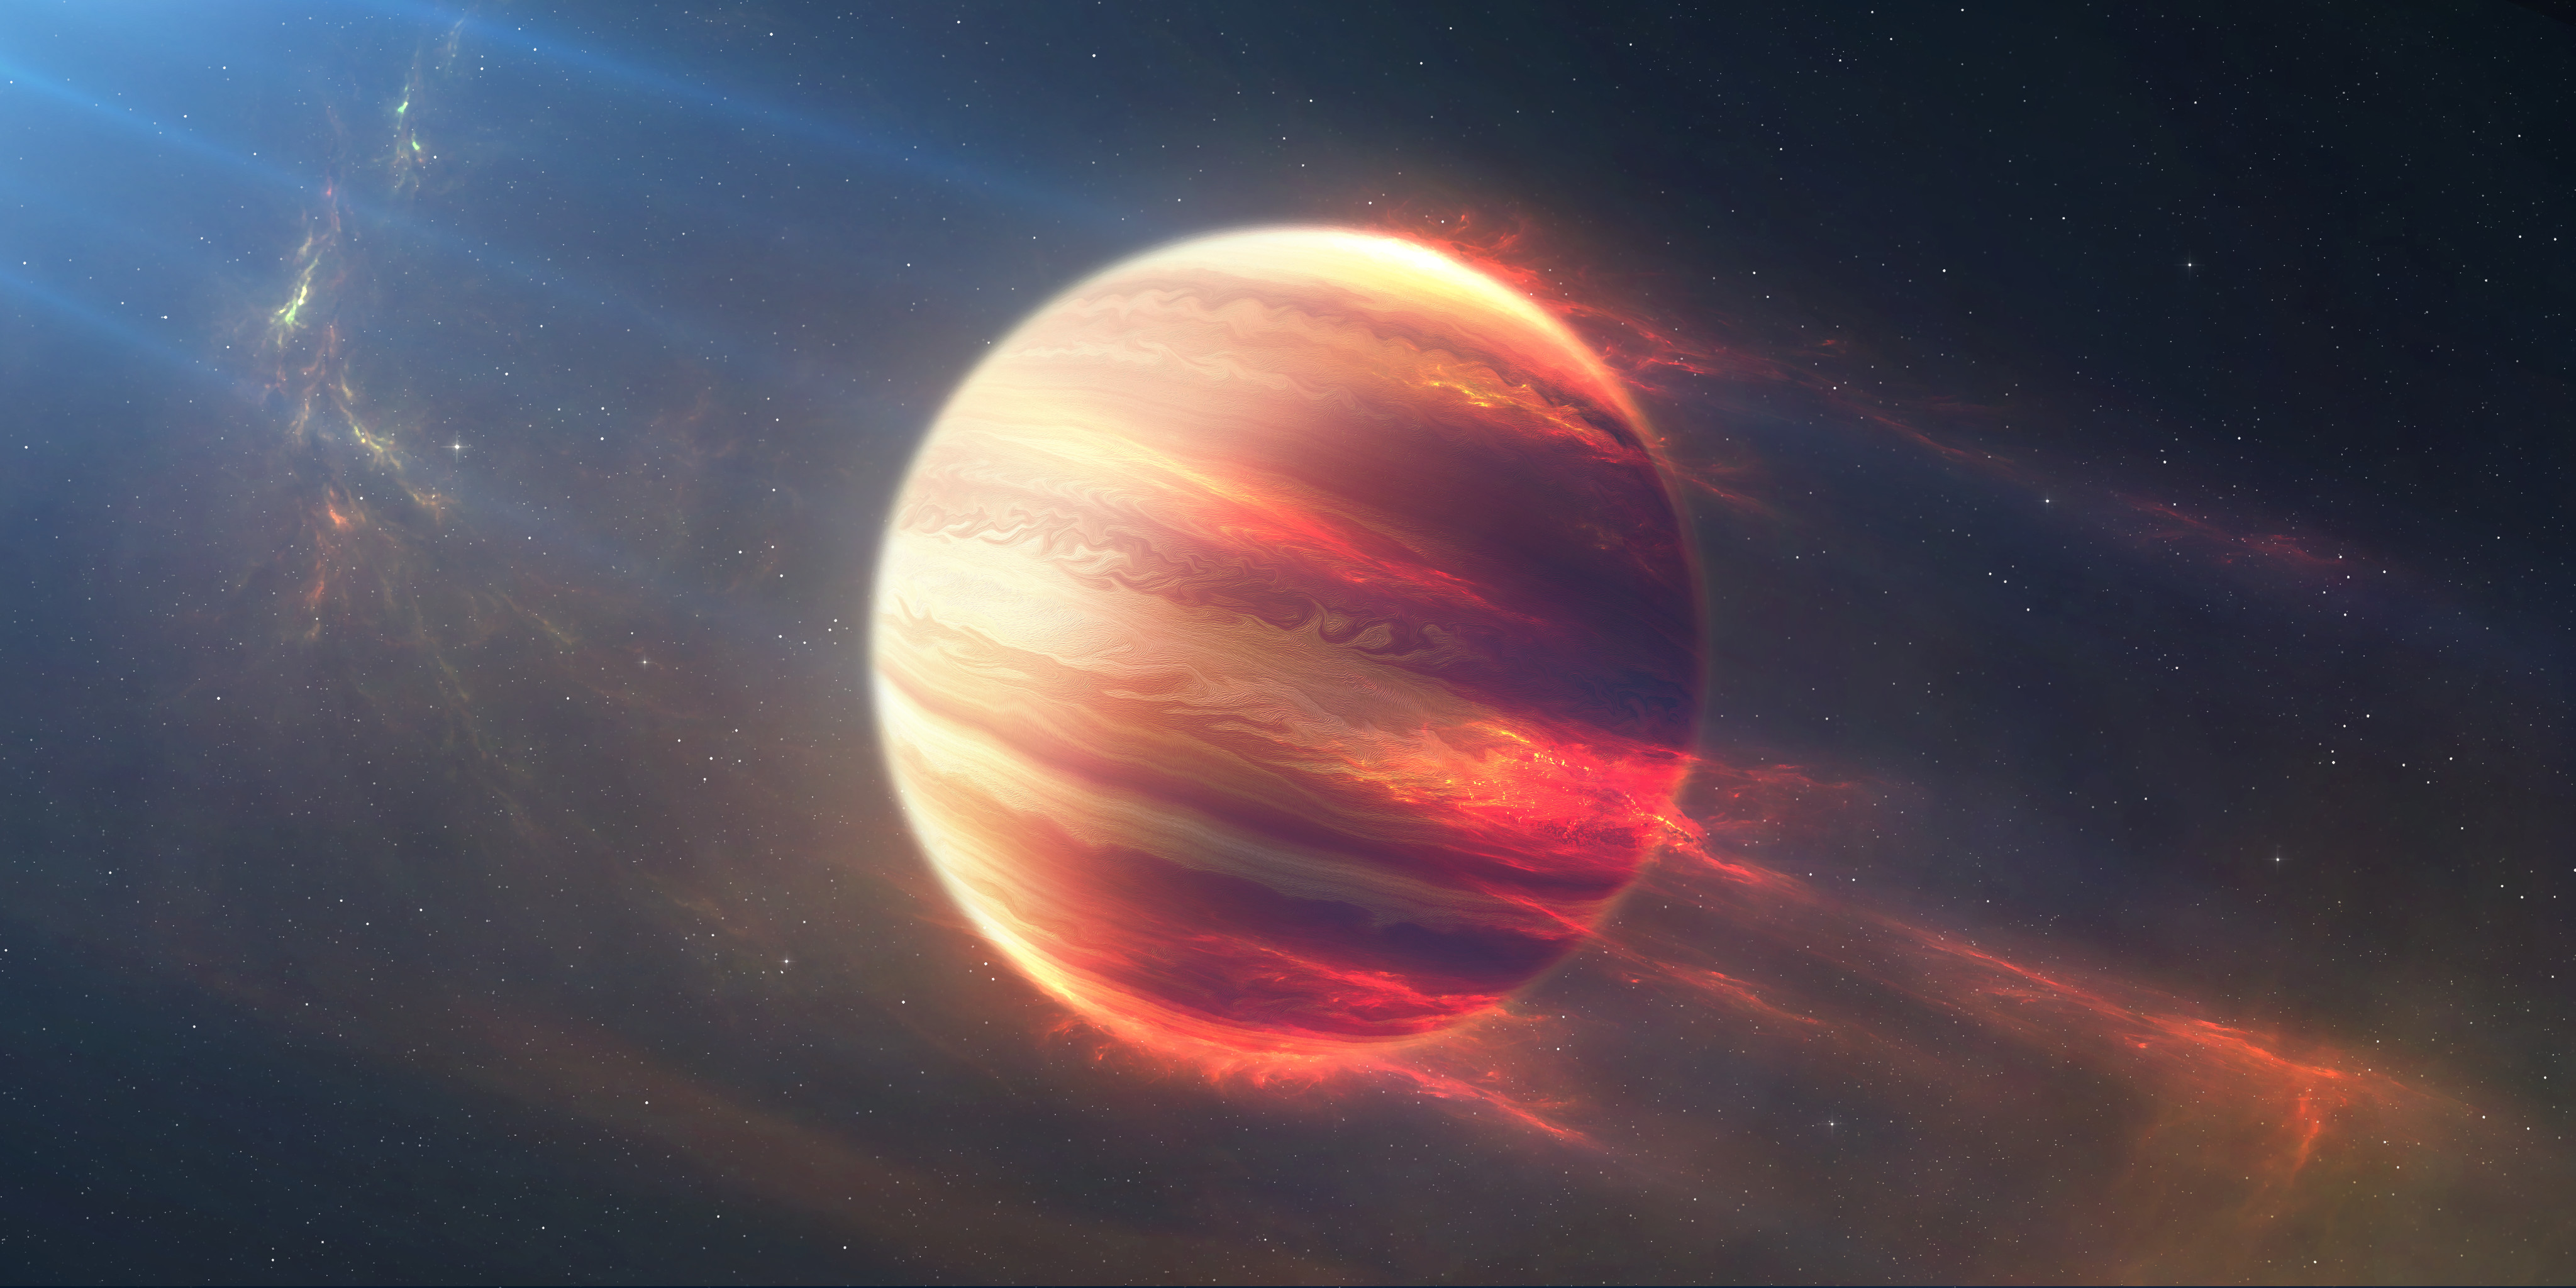 wallpapers of giant planets - photo #18